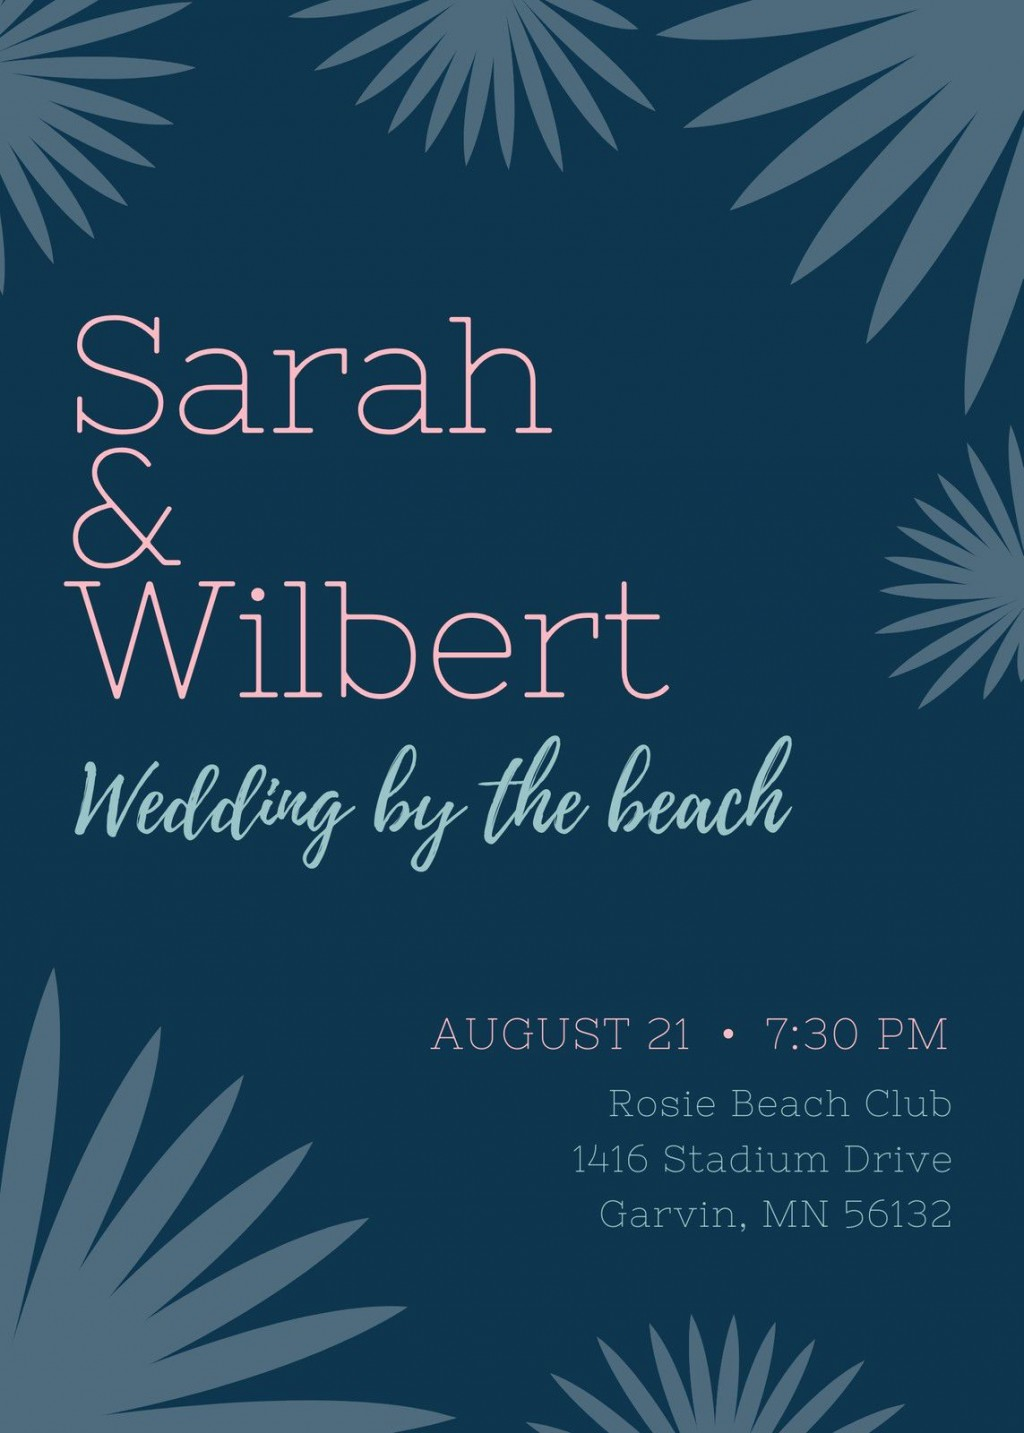 003 Fascinating Beach Wedding Invitation Template Example  Templates Free Download For WordLarge